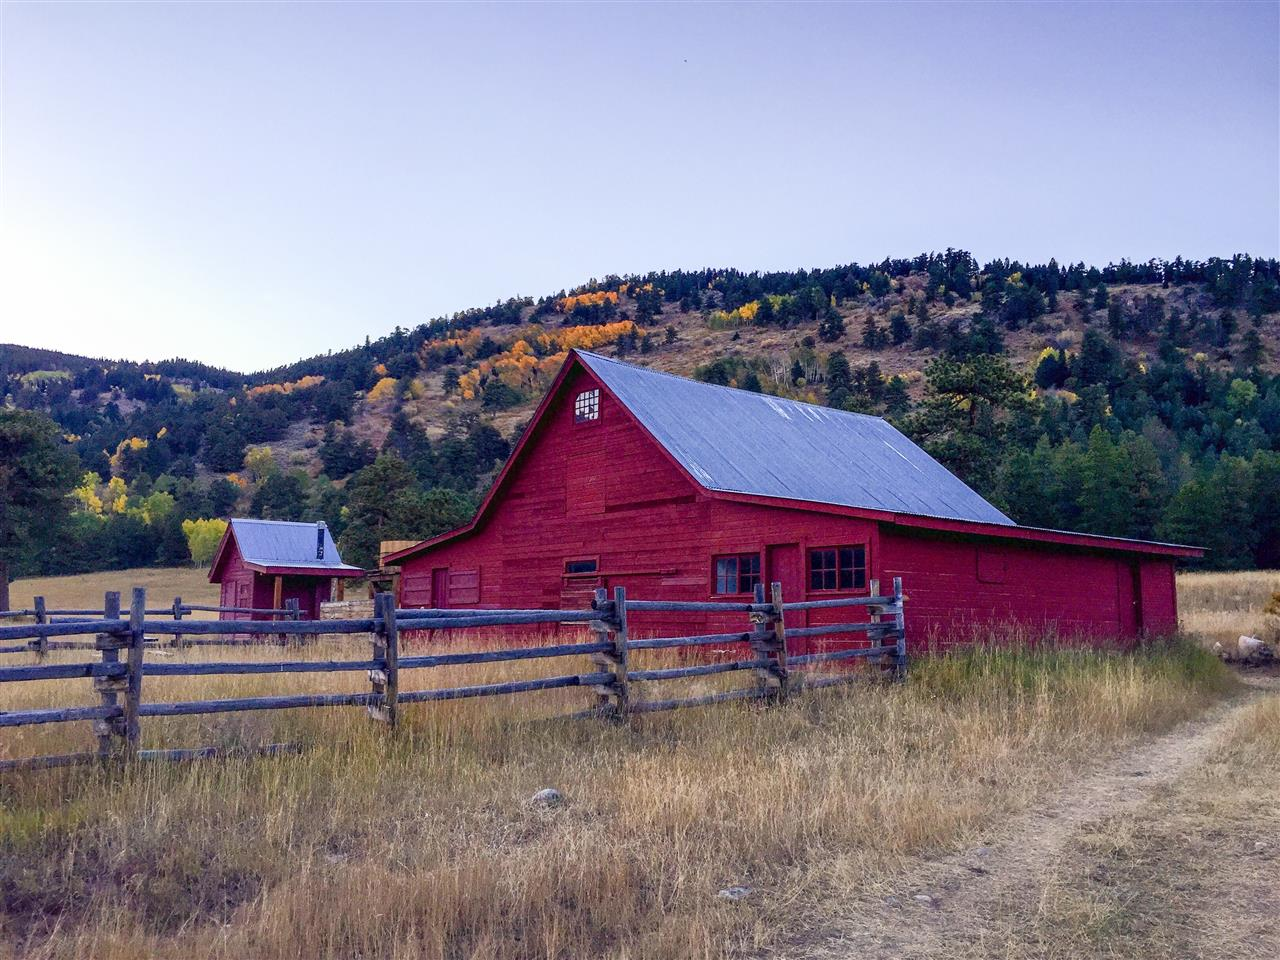 Barn at Caribou Ranch open space, Nederland, CO